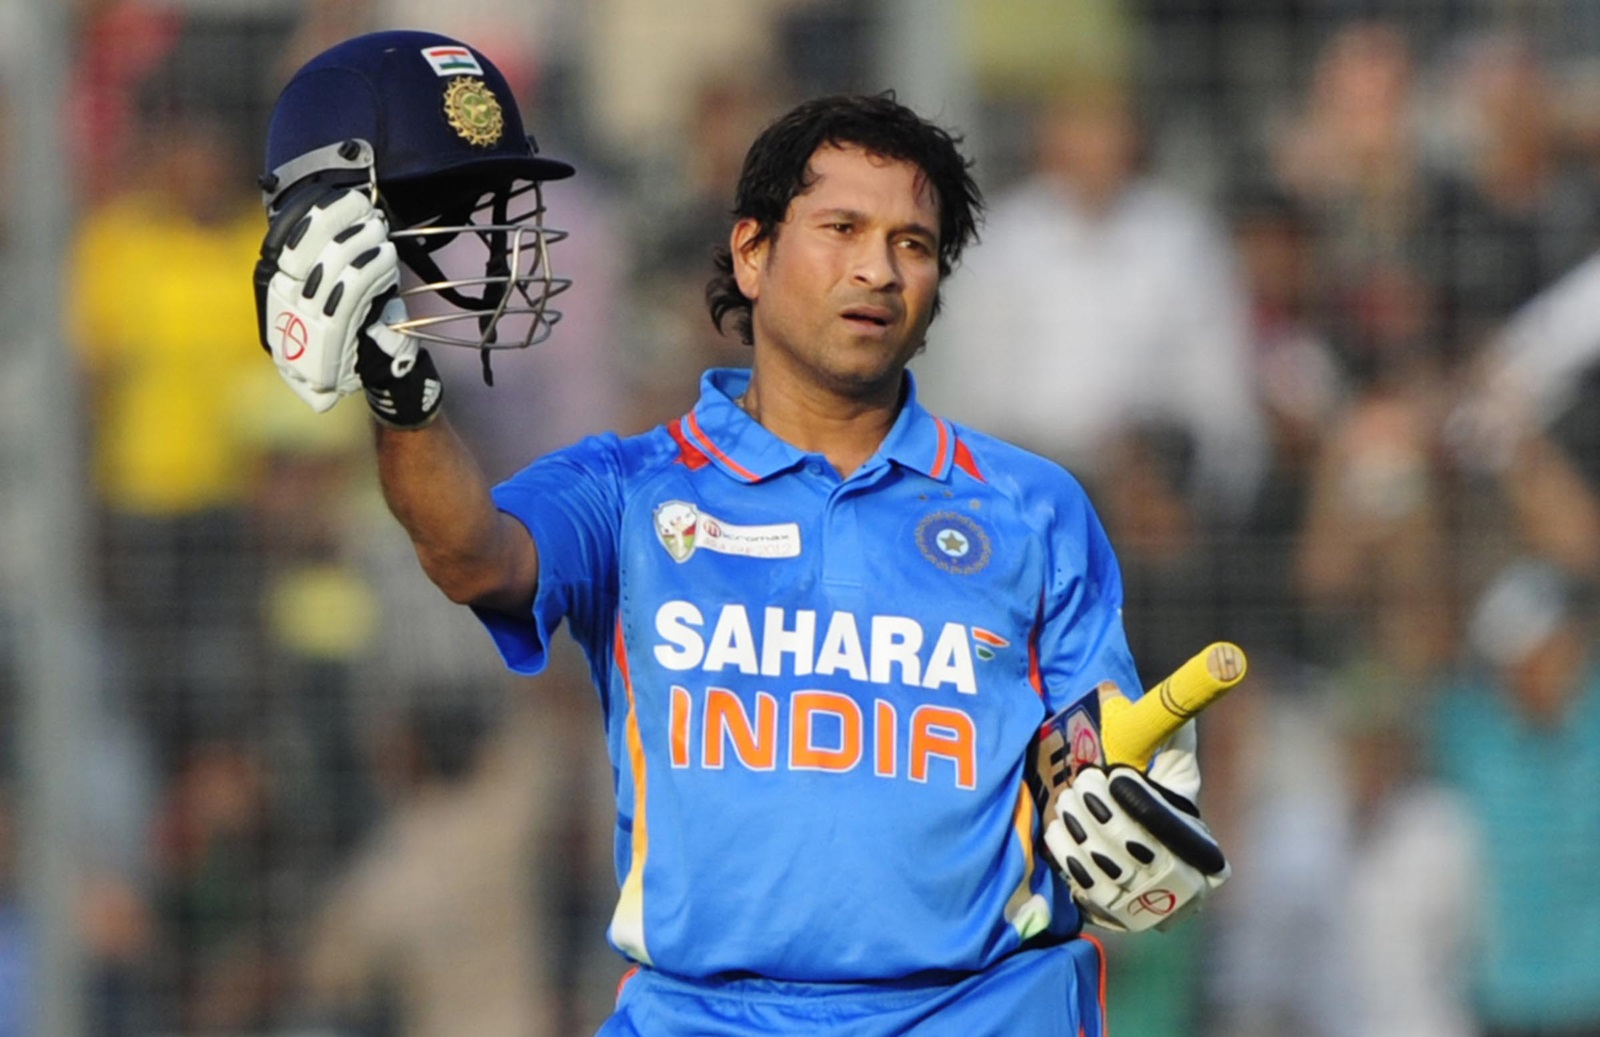 Though T20 format came late in his career, Sachin Tendulkar adjusted to it well, playing IPL with success